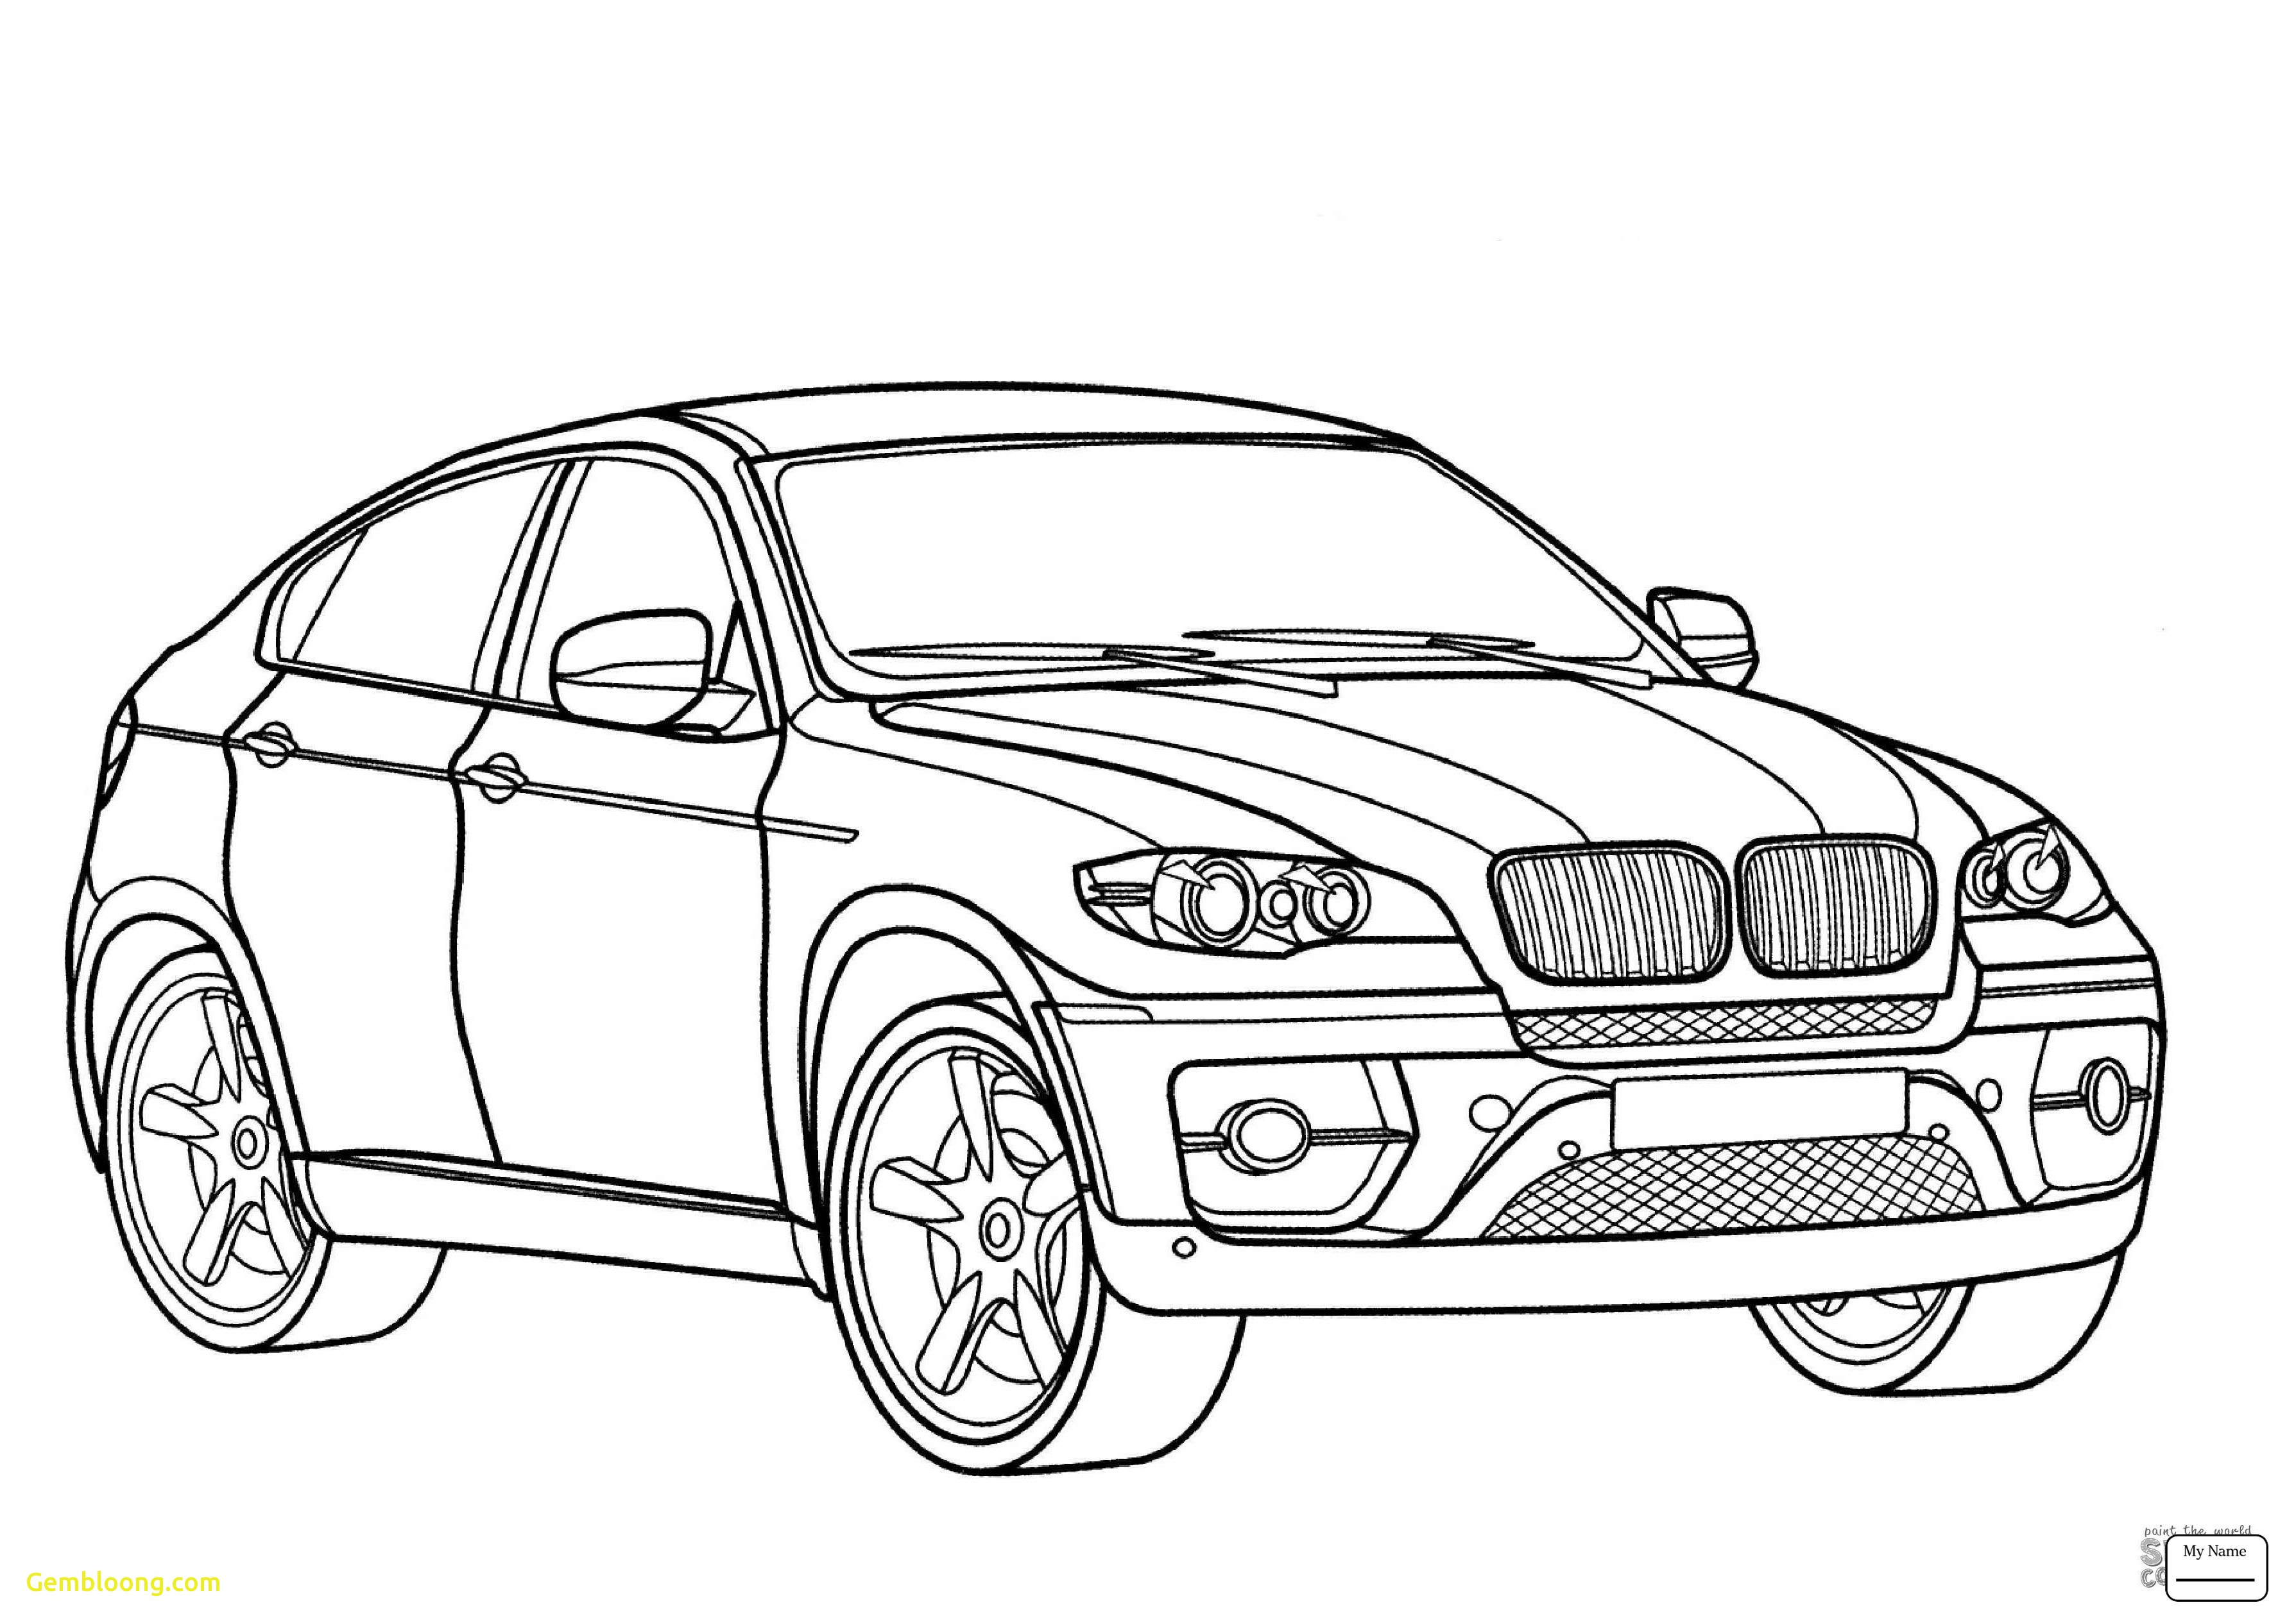 bmw coloring pages Download-Best Kids Car New Bmw Coloring Pages Inspirational Bmw Kids Car Unique Coloring Pages 9-j